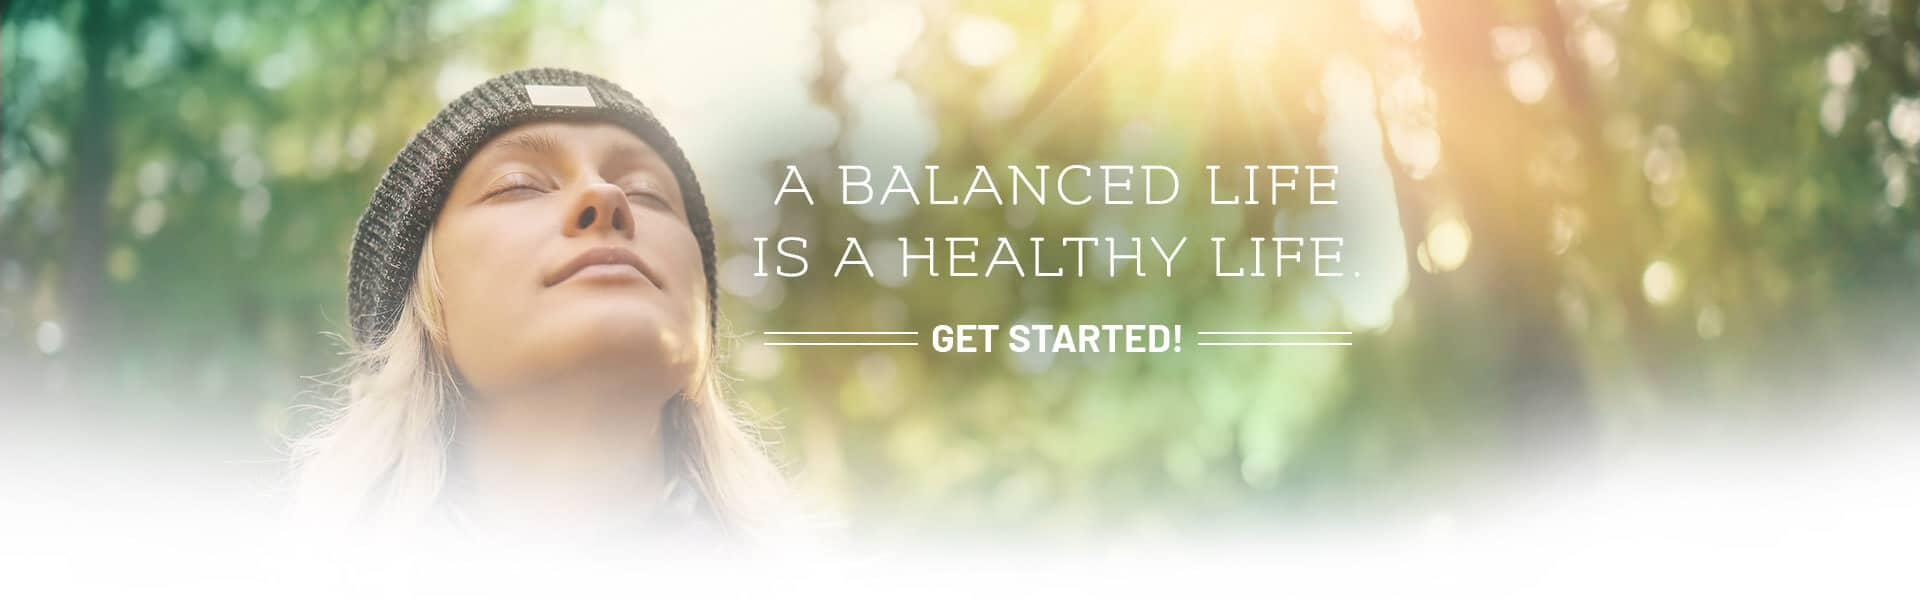 Find_Your_Balance_Get_started